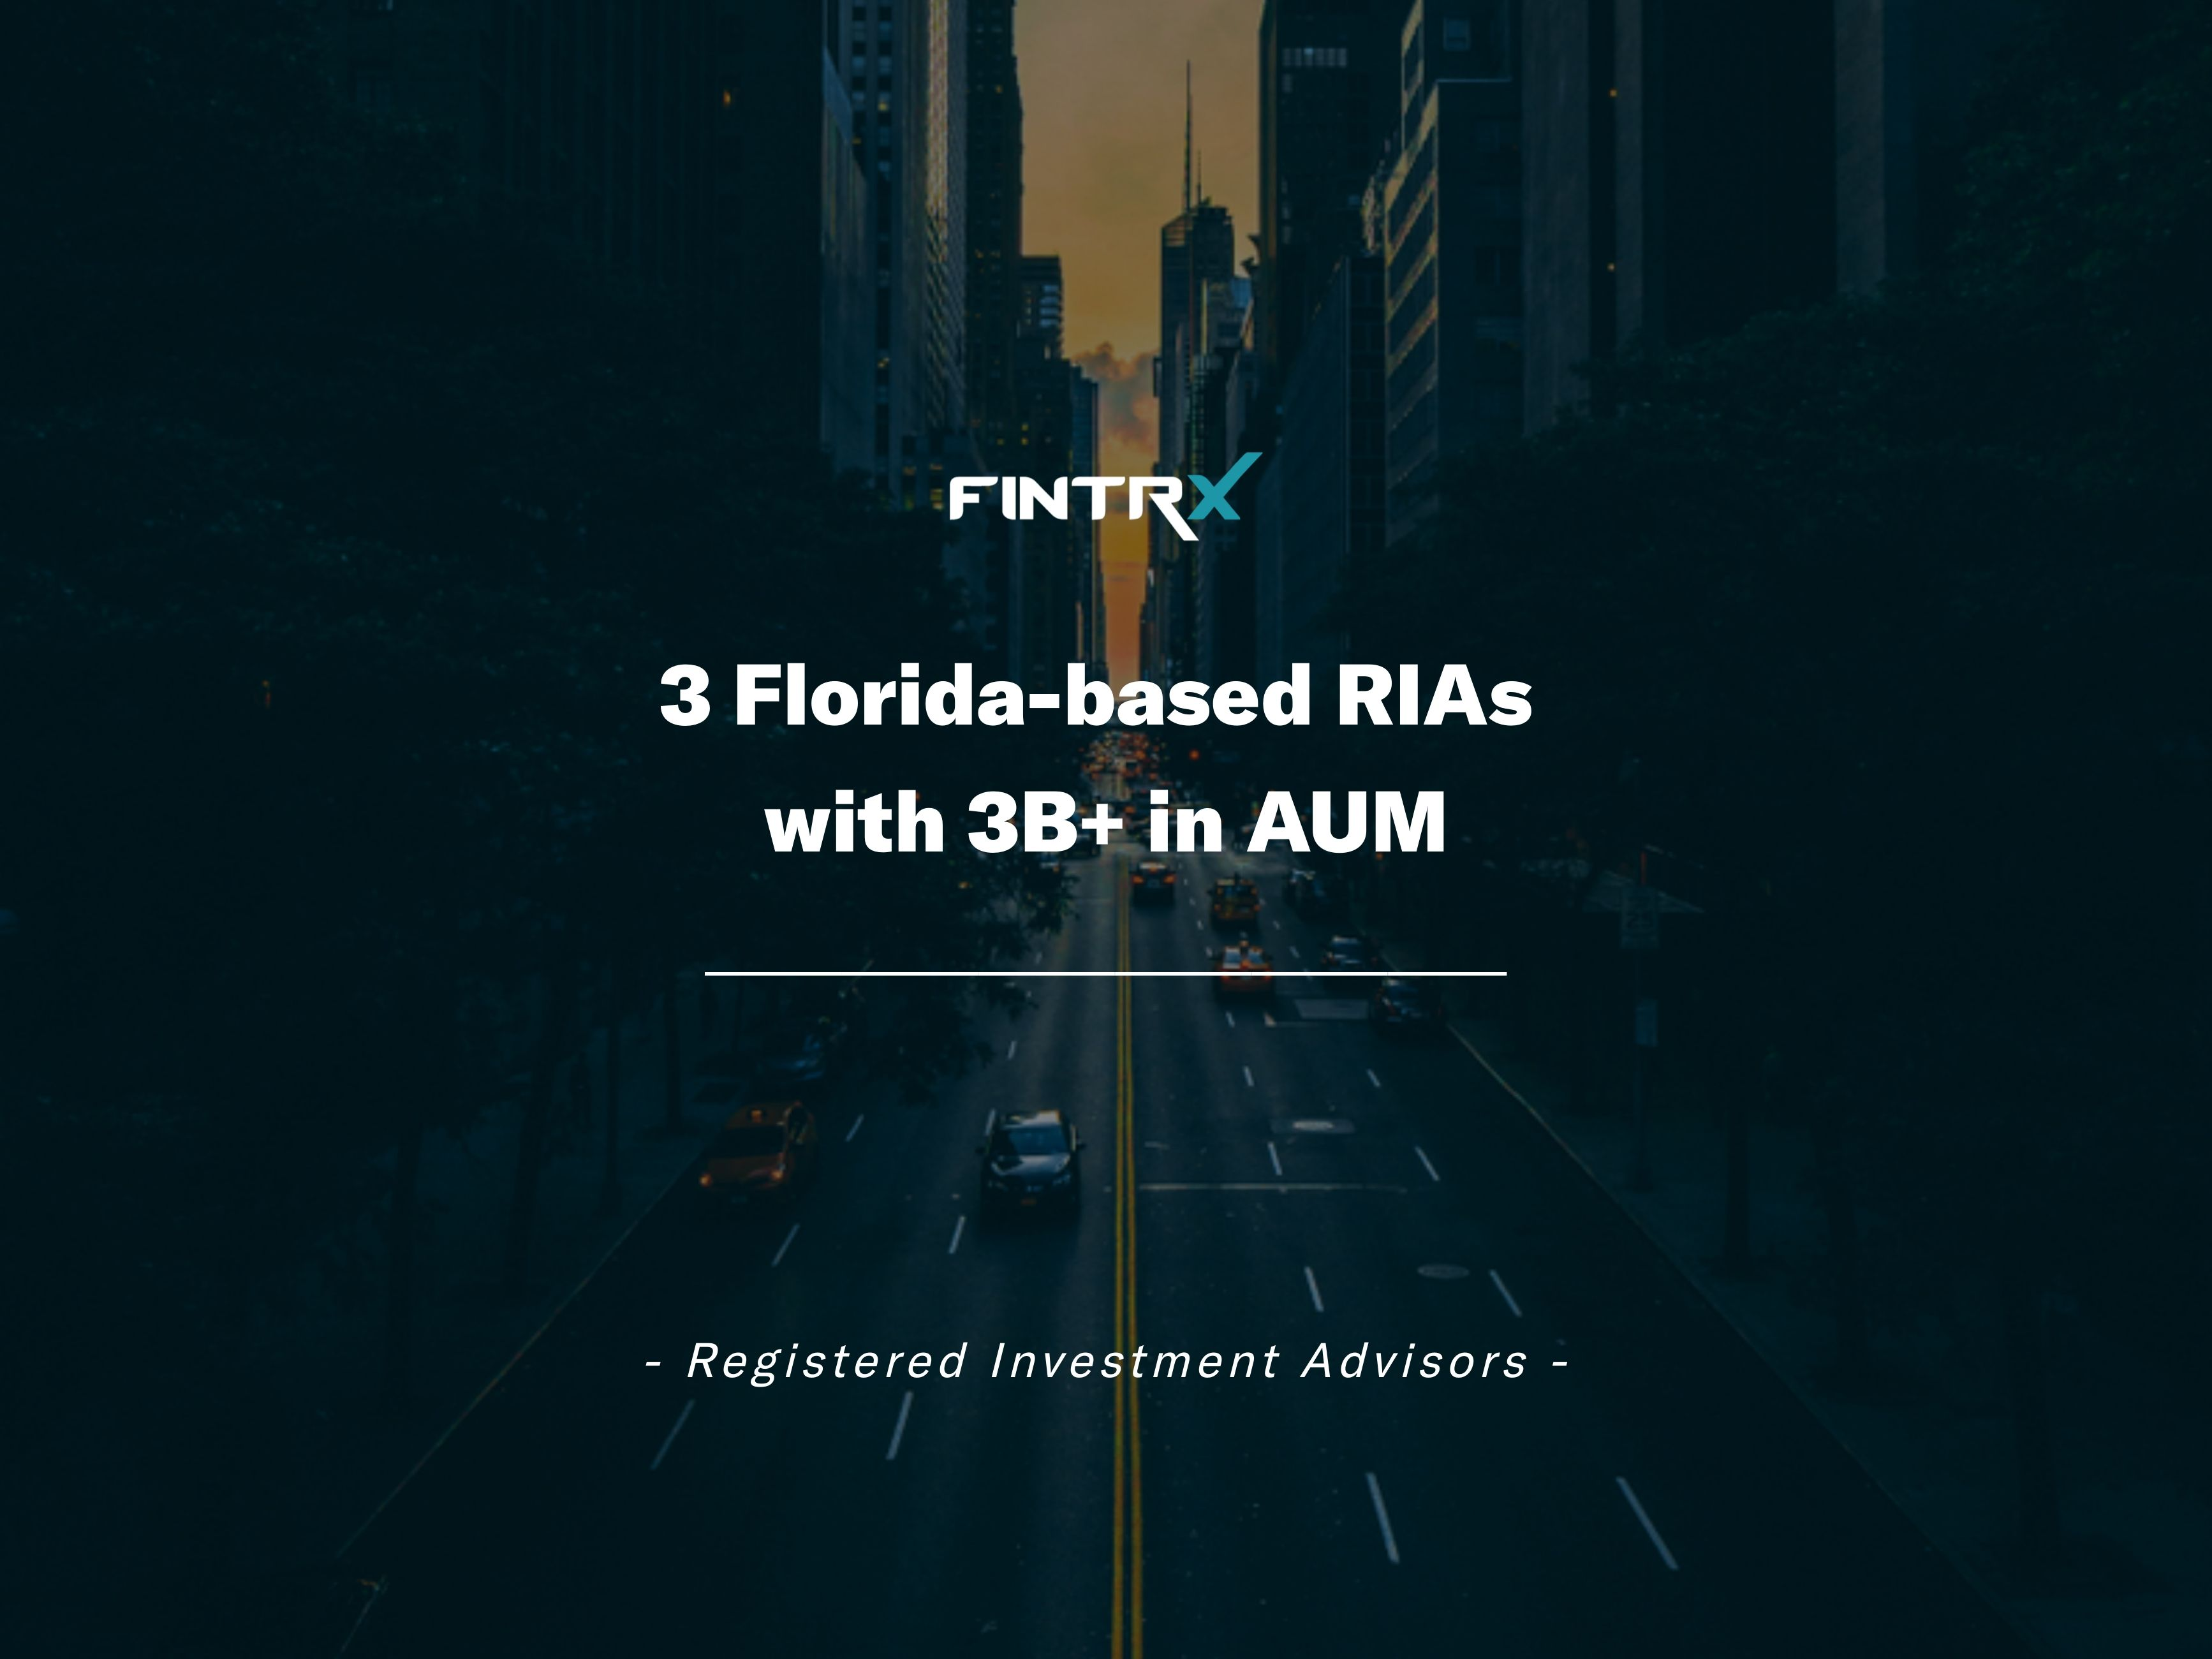 Three Florida-based registered investment advisors (RIAs) with over three billion in Assets (AUM)